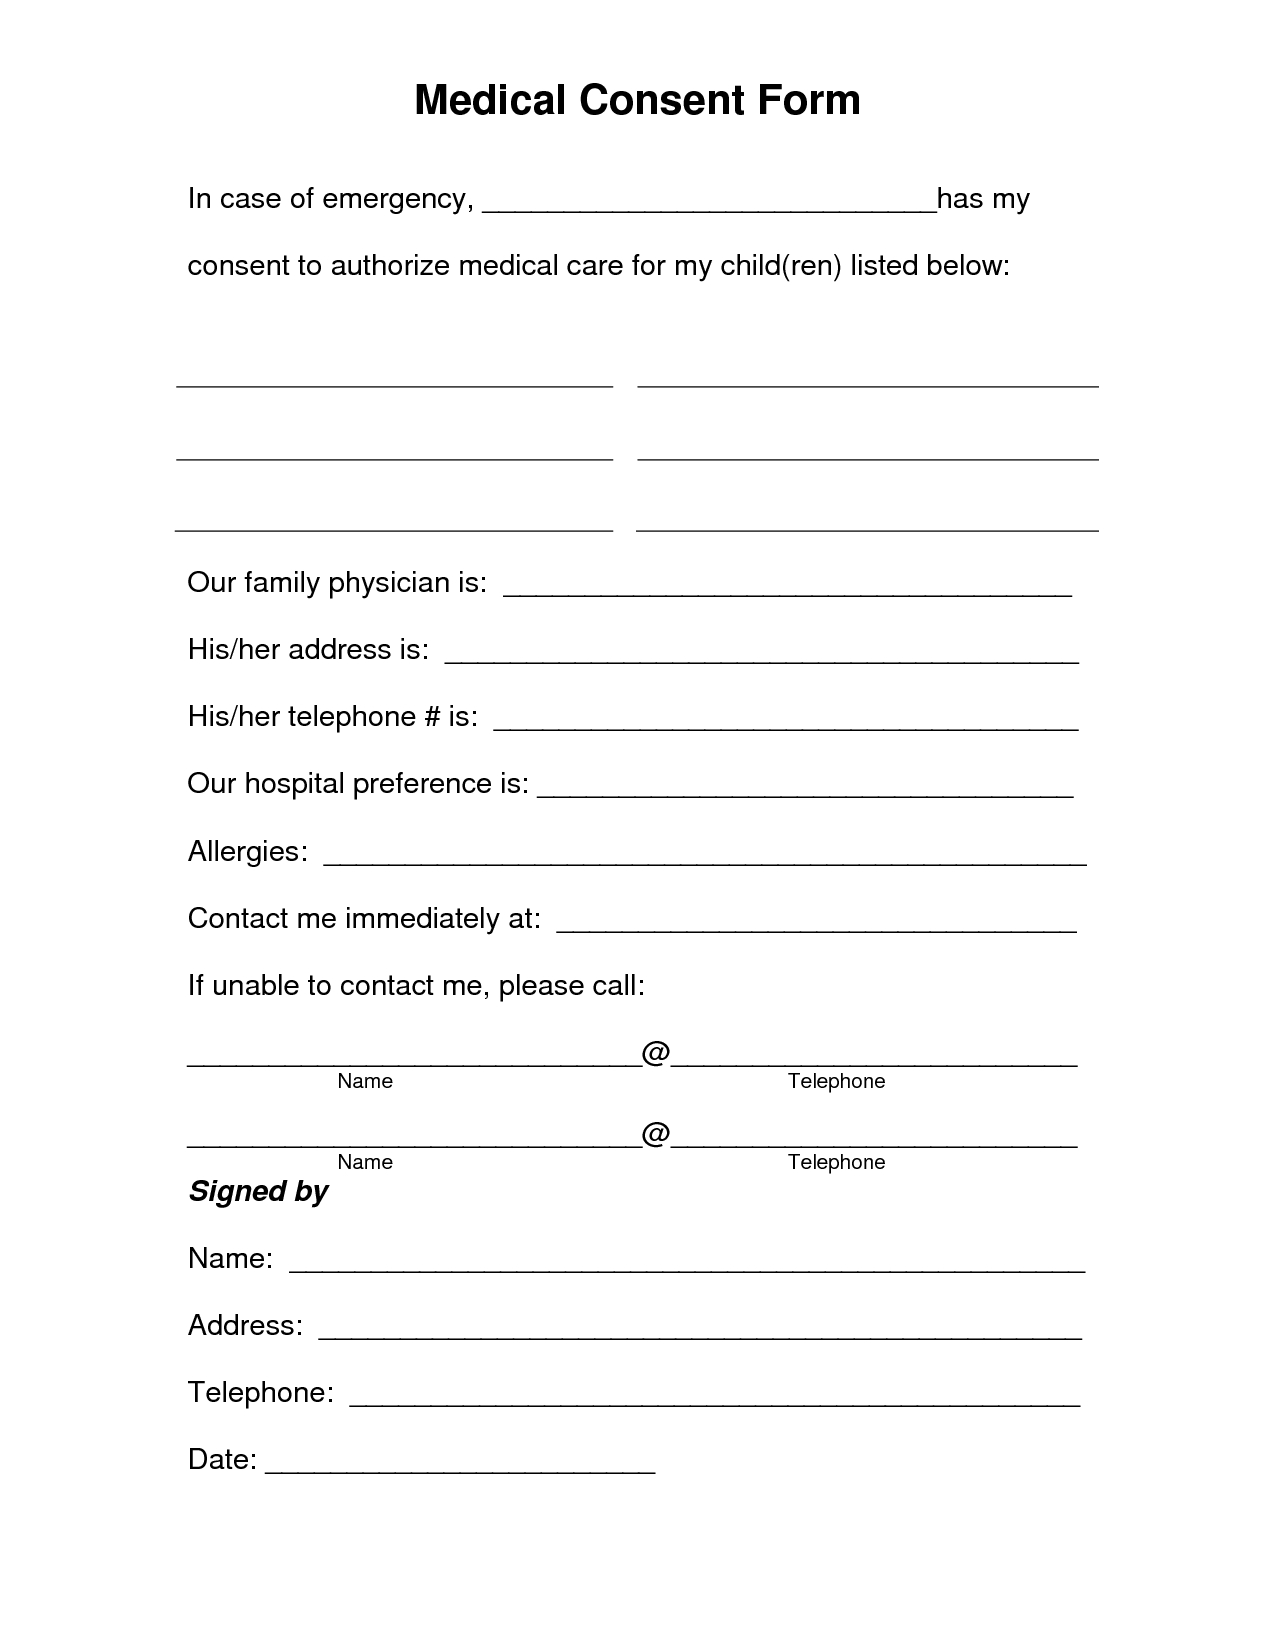 Free Printable Medical Consent Form | Free Medical Consent Form - Find Free Printable Forms Online